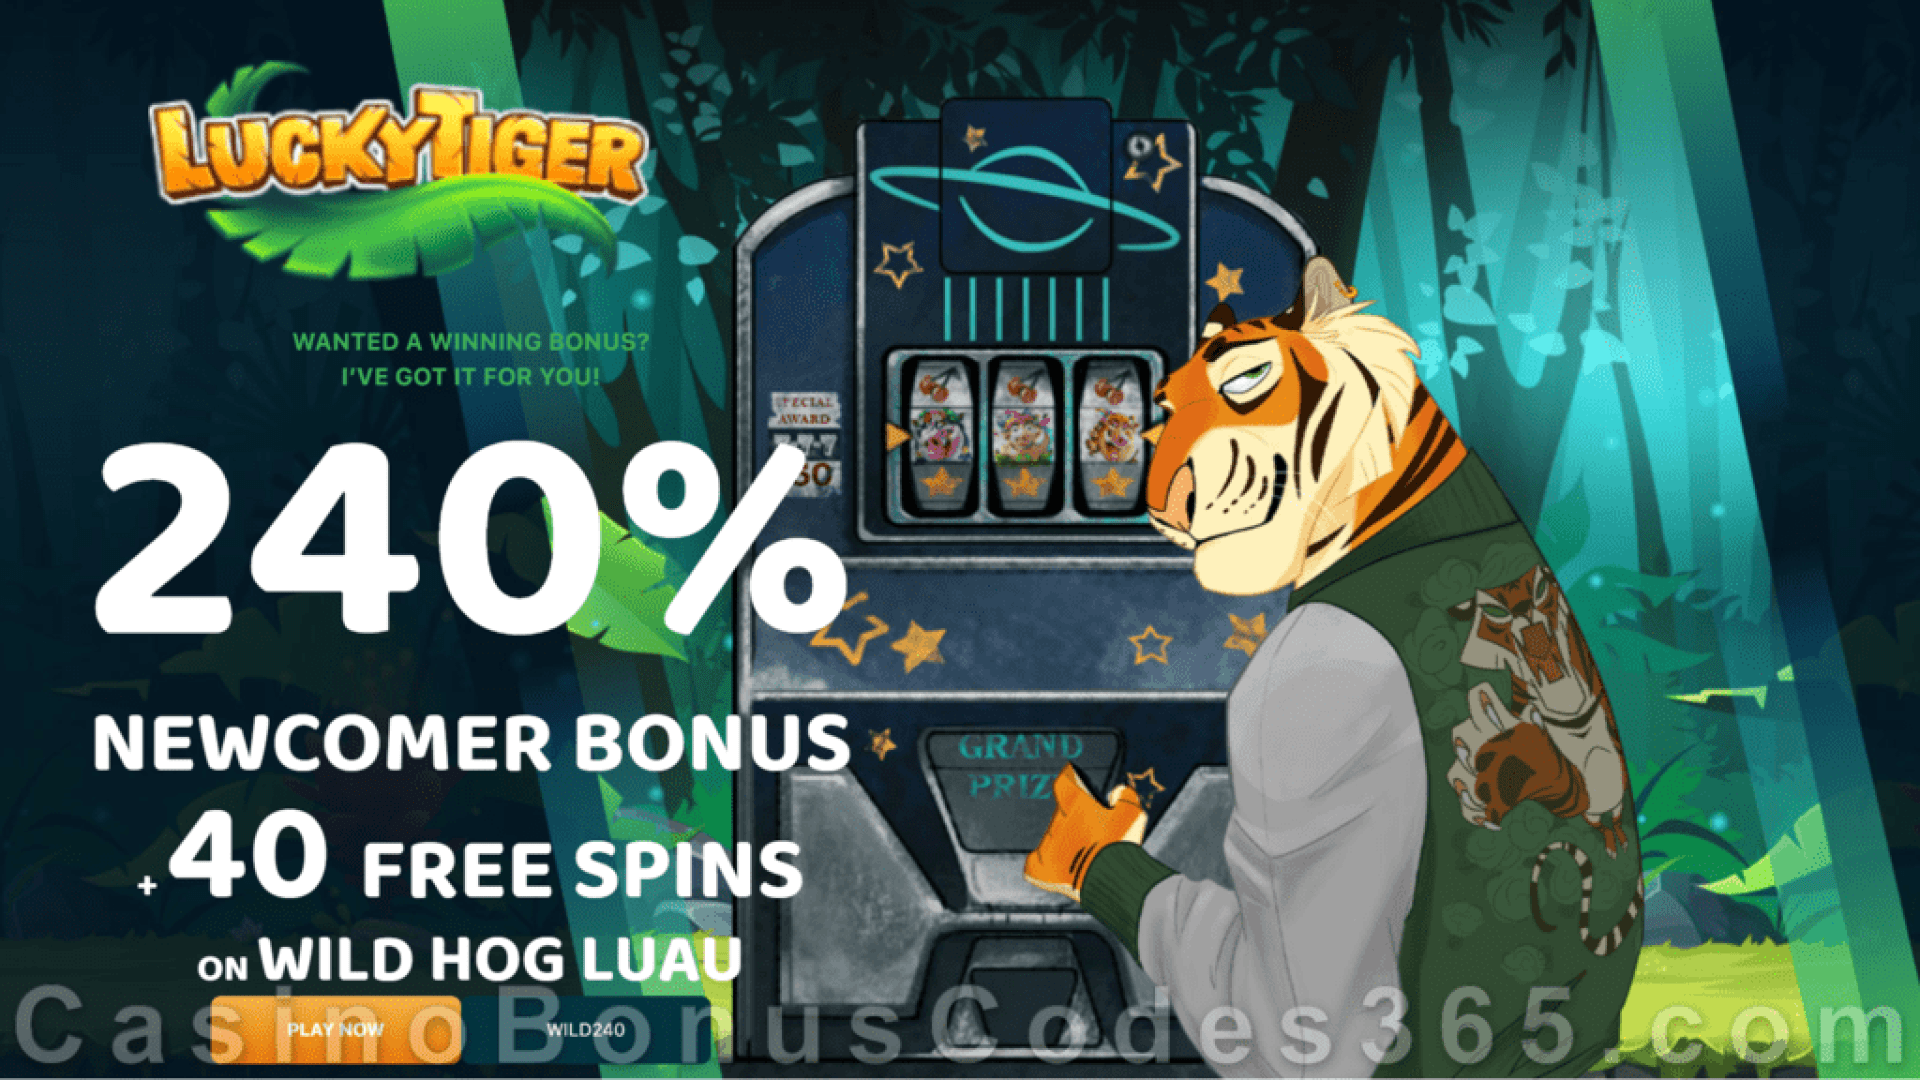 Lucky Tiger Casino 240% Match Bonus plus 40 FREE Spins on Wild Hog Luau Welcome Package